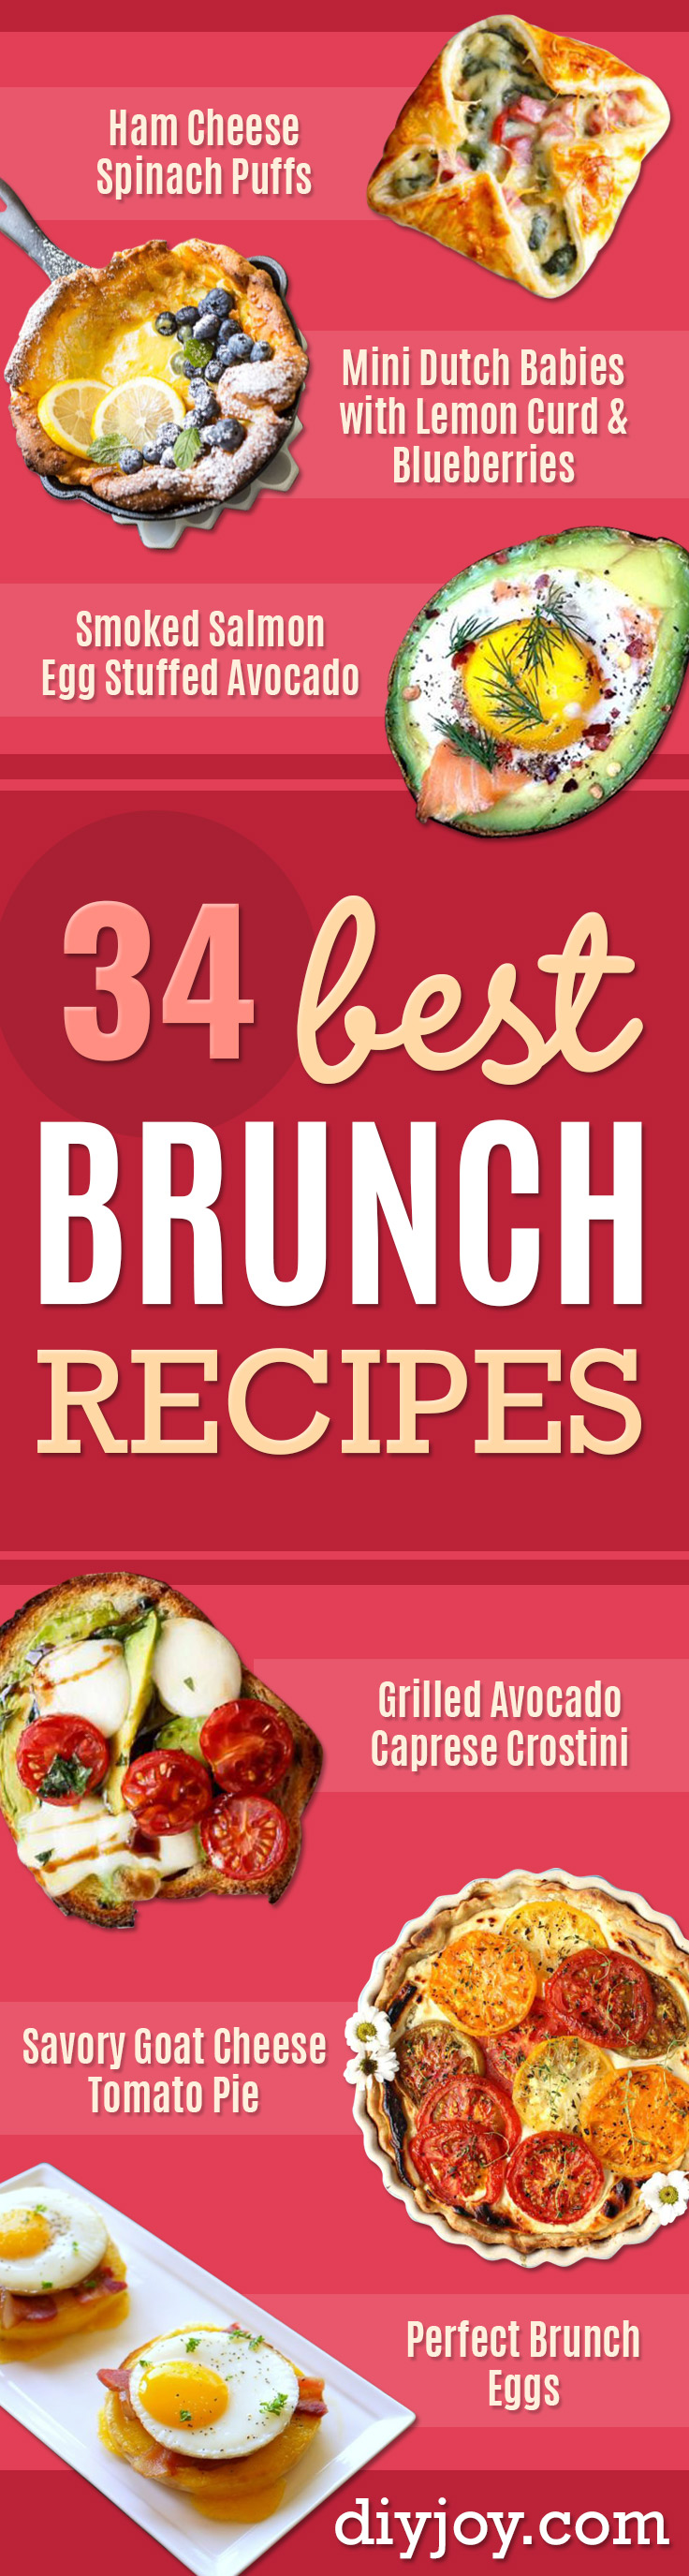 Best Brunch Recipes - Eggs, Pancakes, Waffles, Casseroles, Vegetable Dishes and Side, Potato Recipe Ideas for Brunches - Serve A Crowd and Family with the versions of Eggs Benedict, Mimosas, Muffins and Pastries, Desserts - Make Ahead , Slow Cooler and Healthy Casserole Recipes http://diyjoy.com/best-brunch-recipes